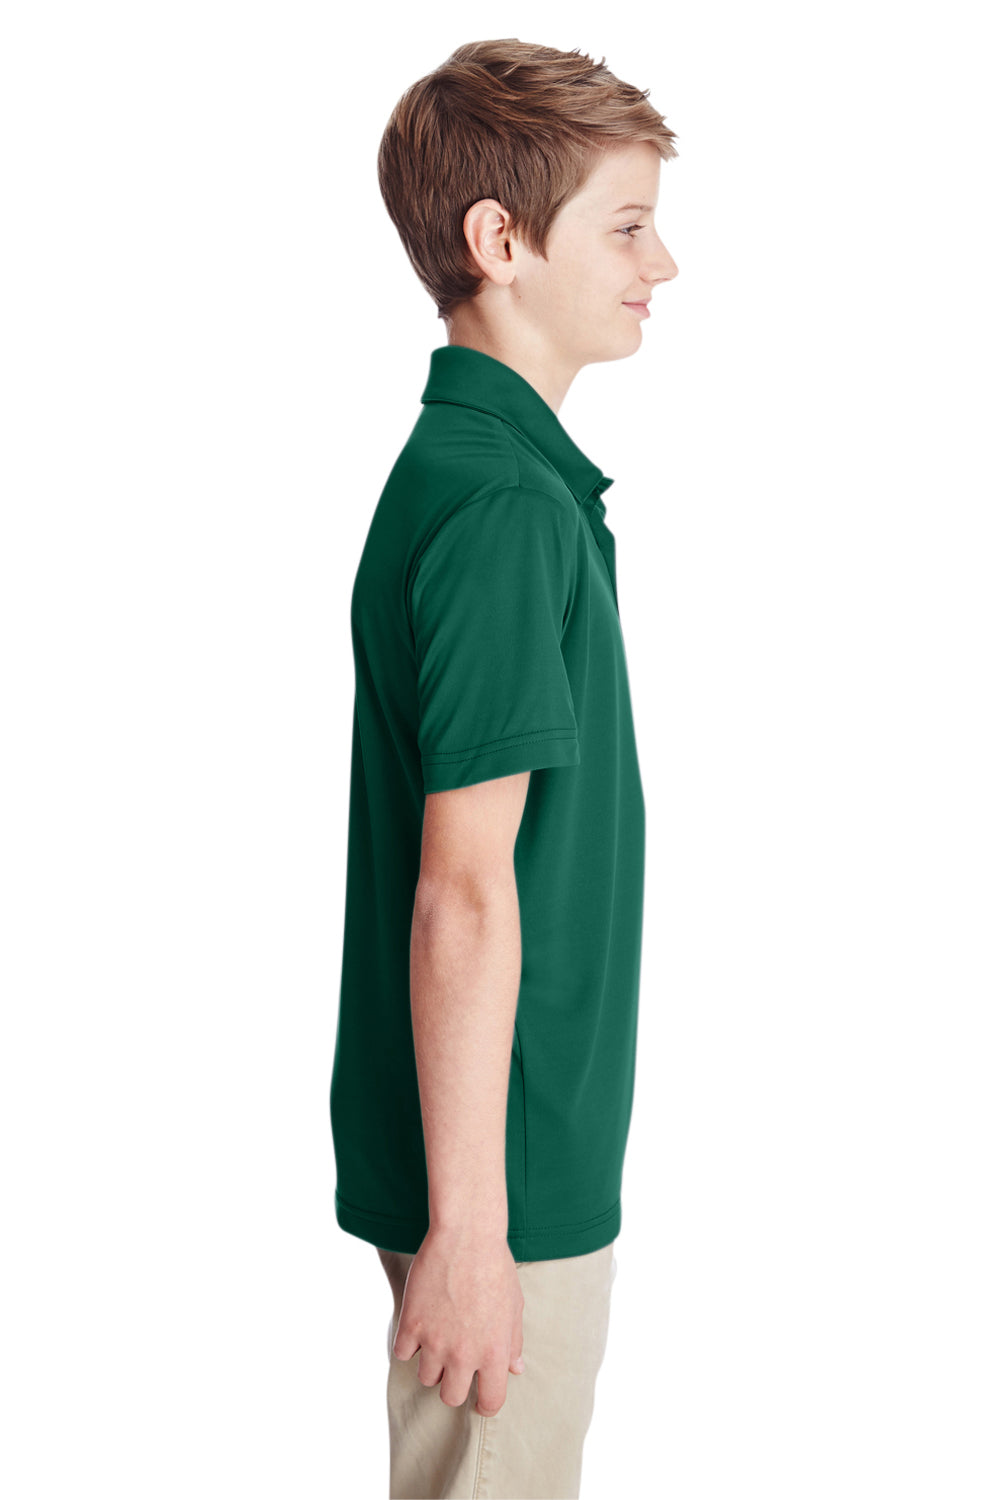 Team 365 TT51Y Youth Zone Performance Moisture Wicking Short Sleeve Polo Shirt Forest Green Side